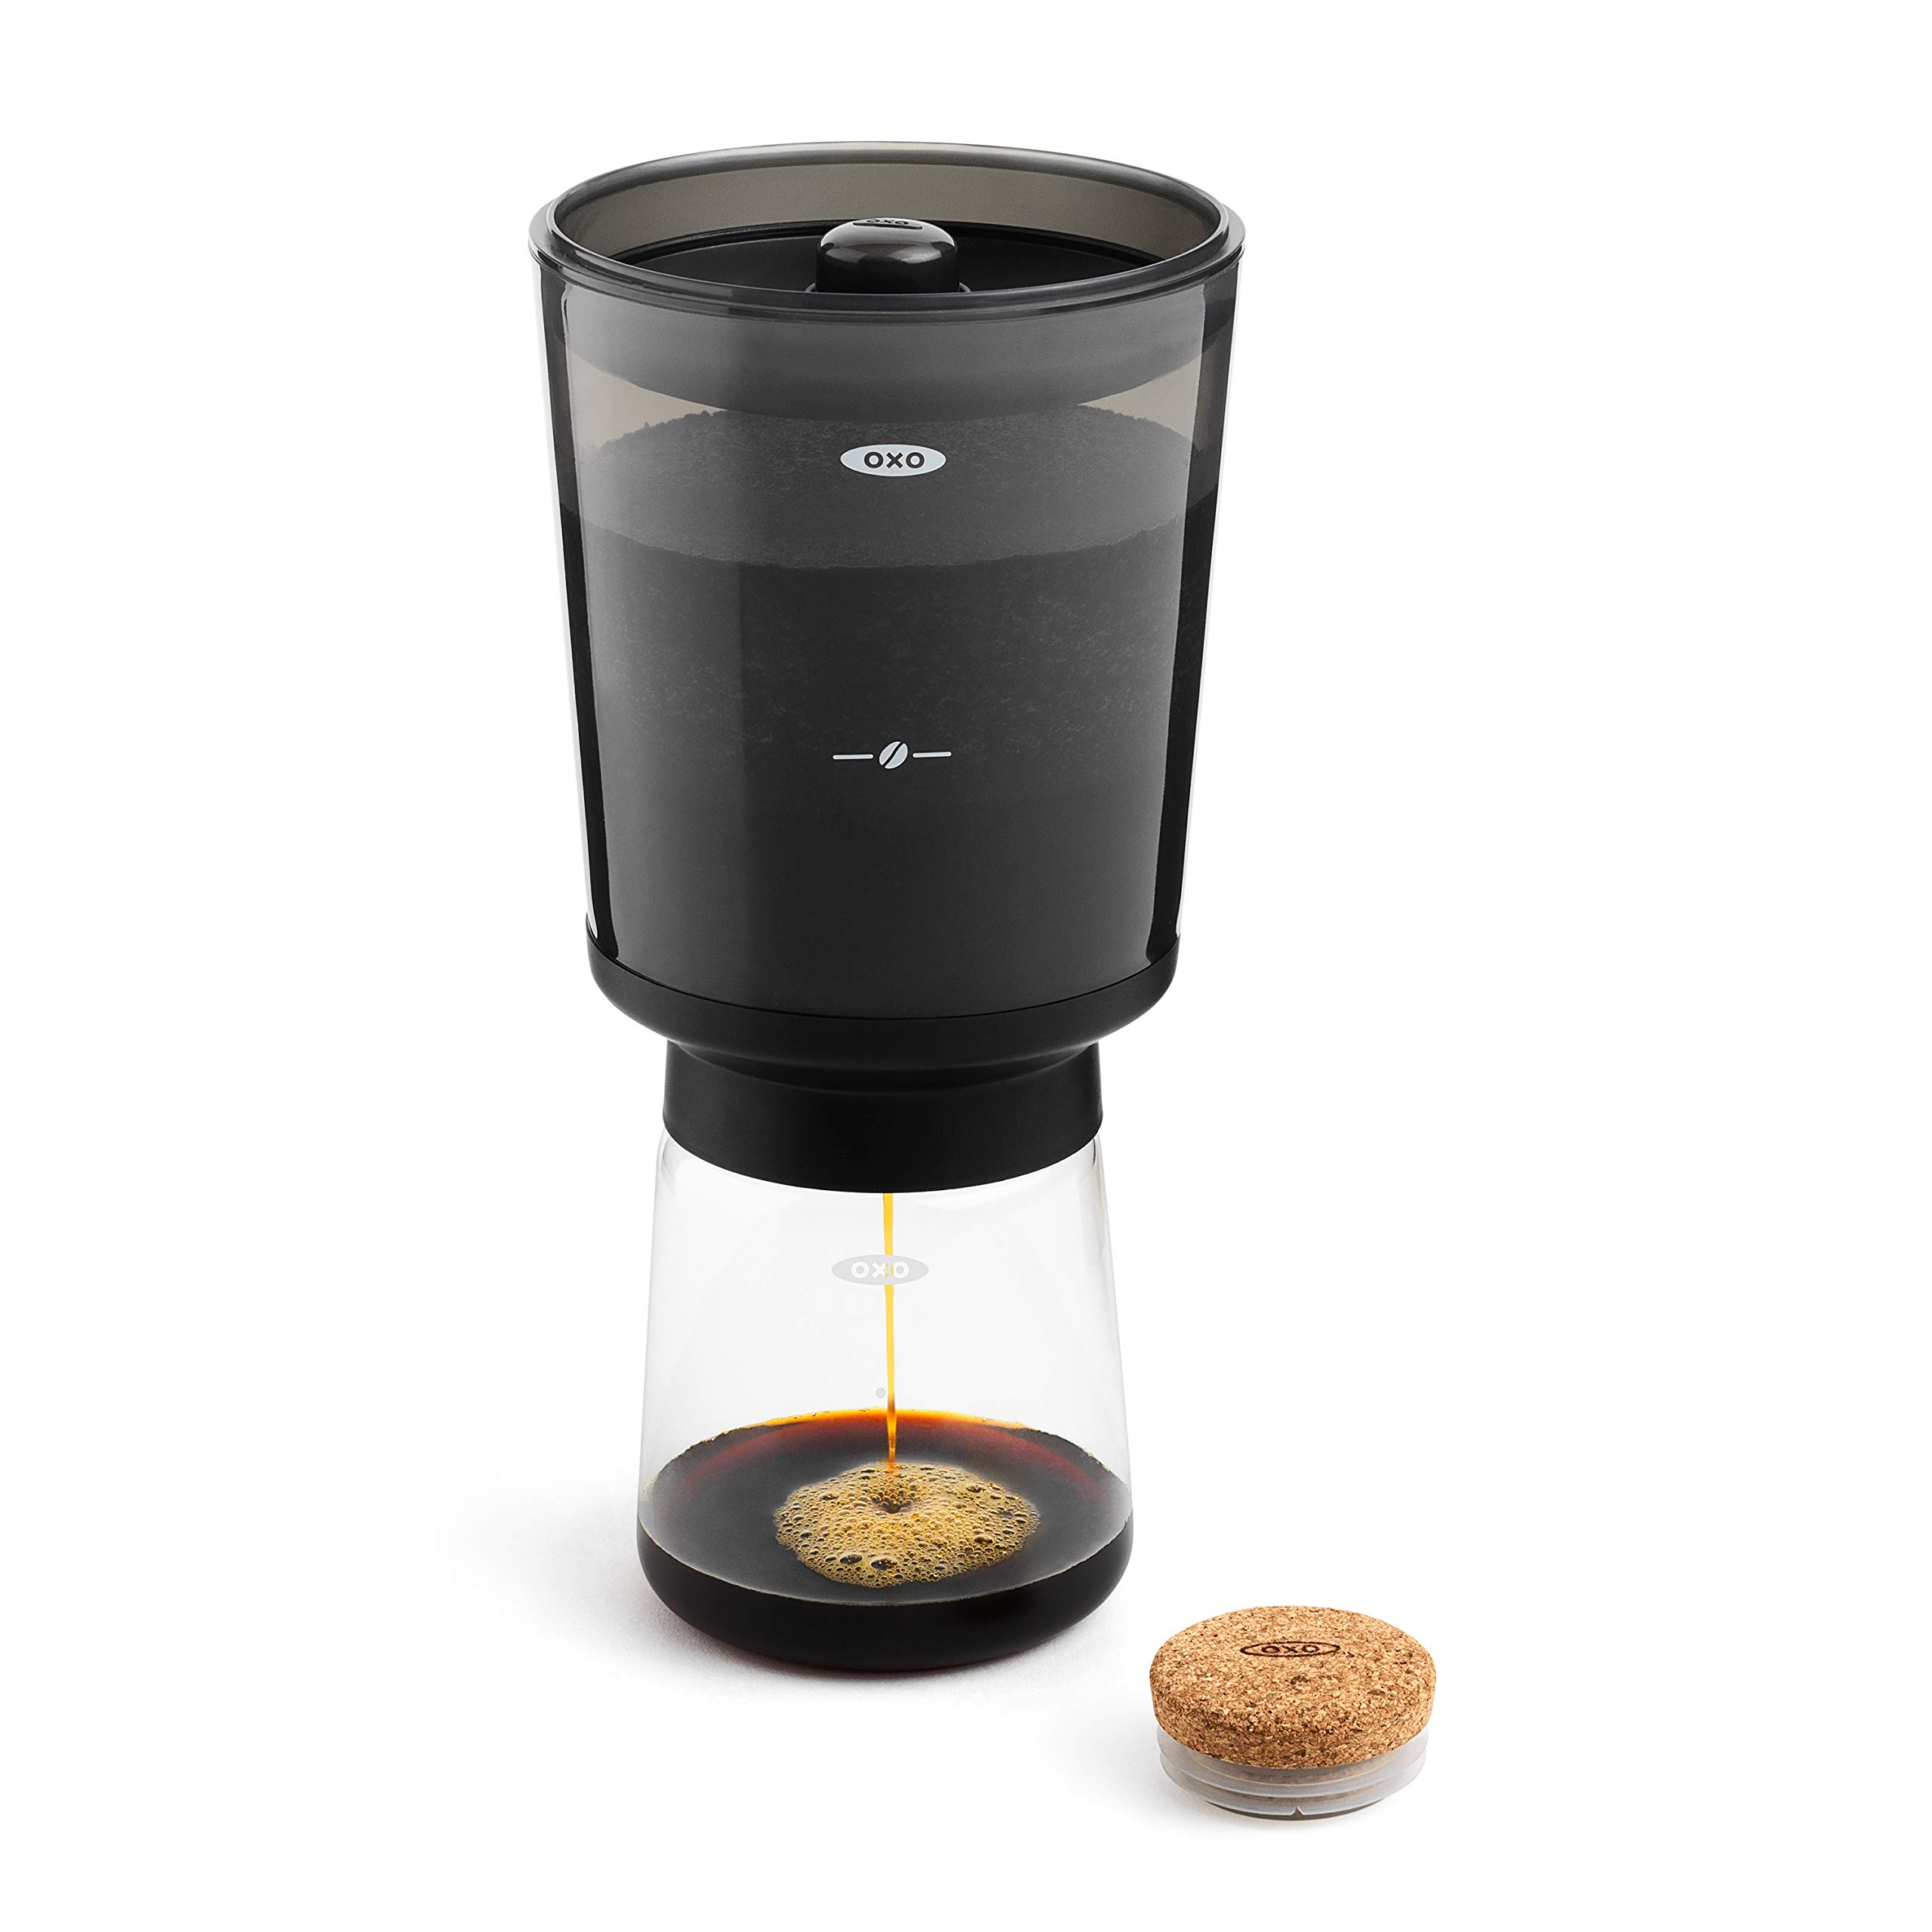 OXO BREW Compact Cold Brew Coffee Maker by OXO